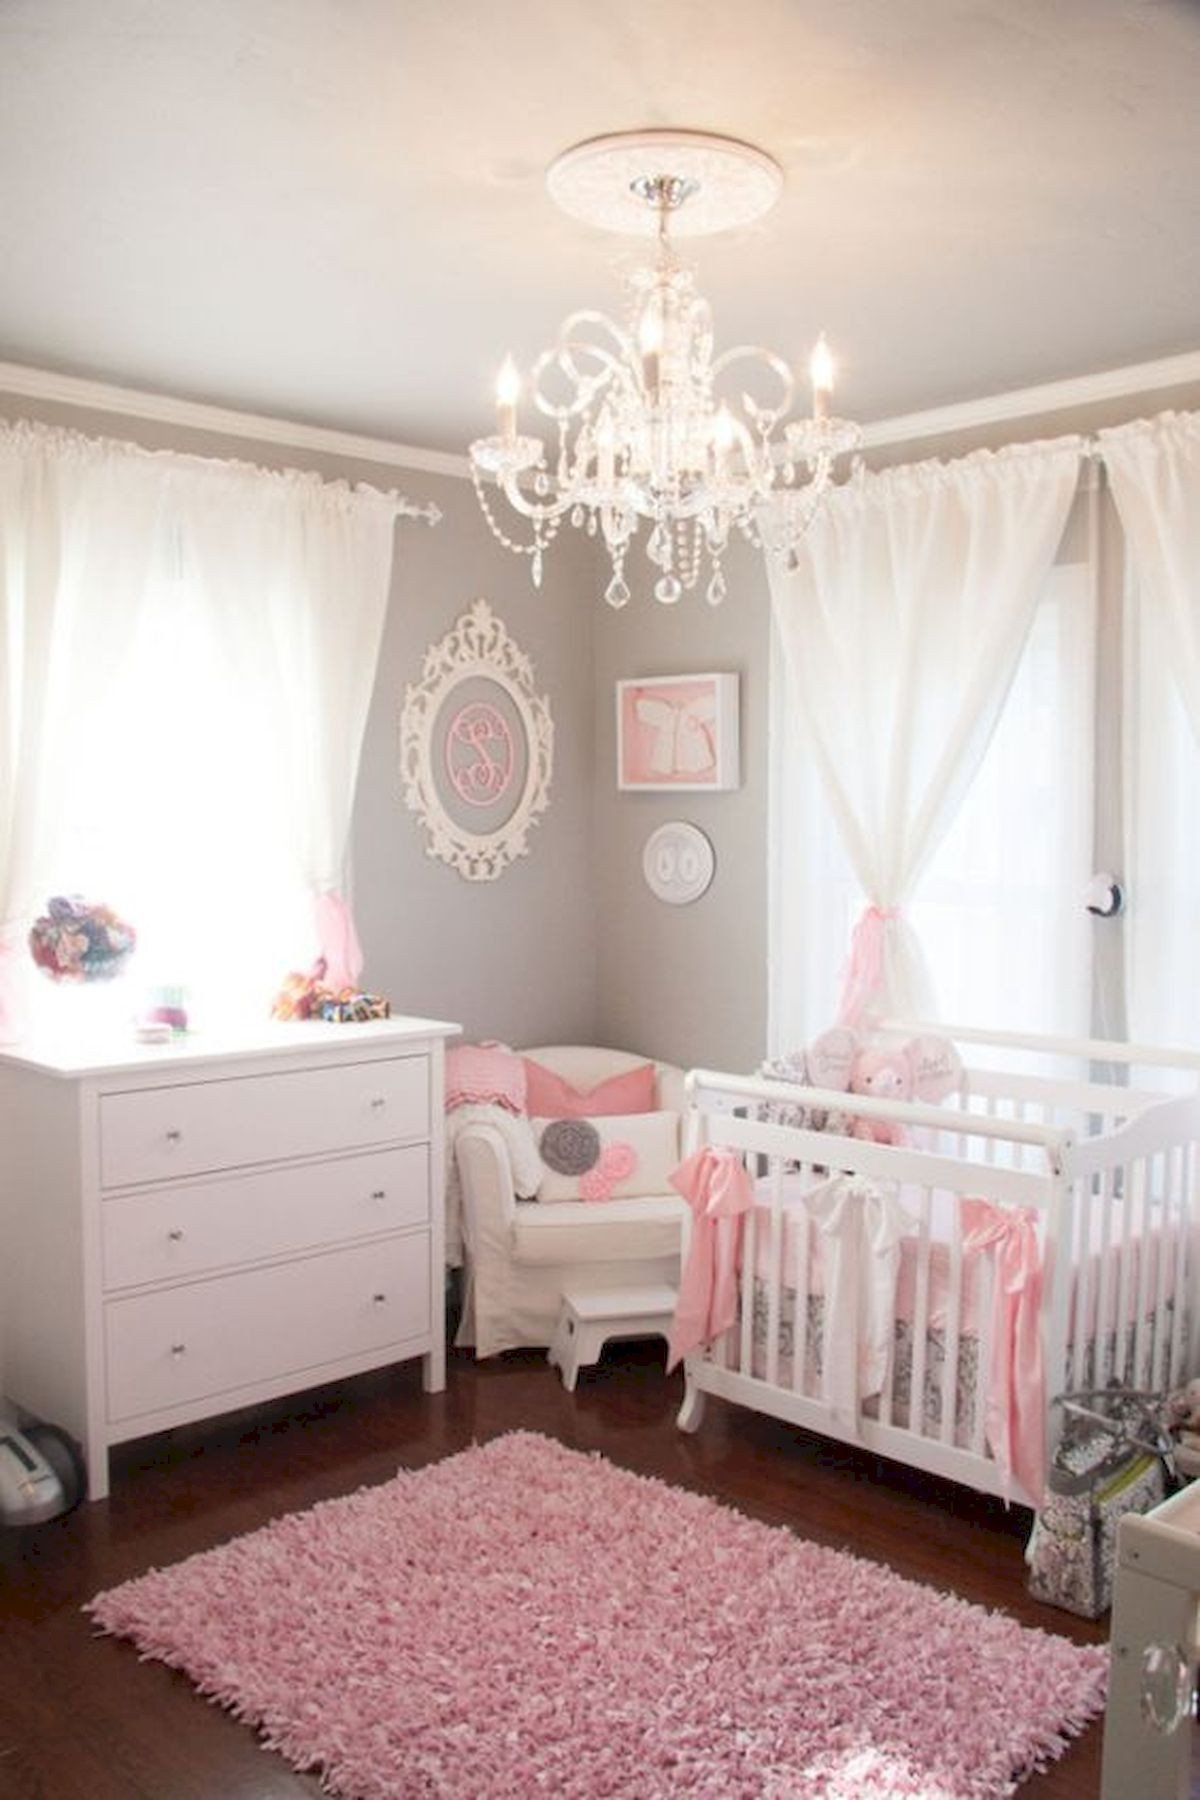 Baby Girl Bedroom Decor Awesome 33 Adorable Nursery Room Ideas for Baby Girl